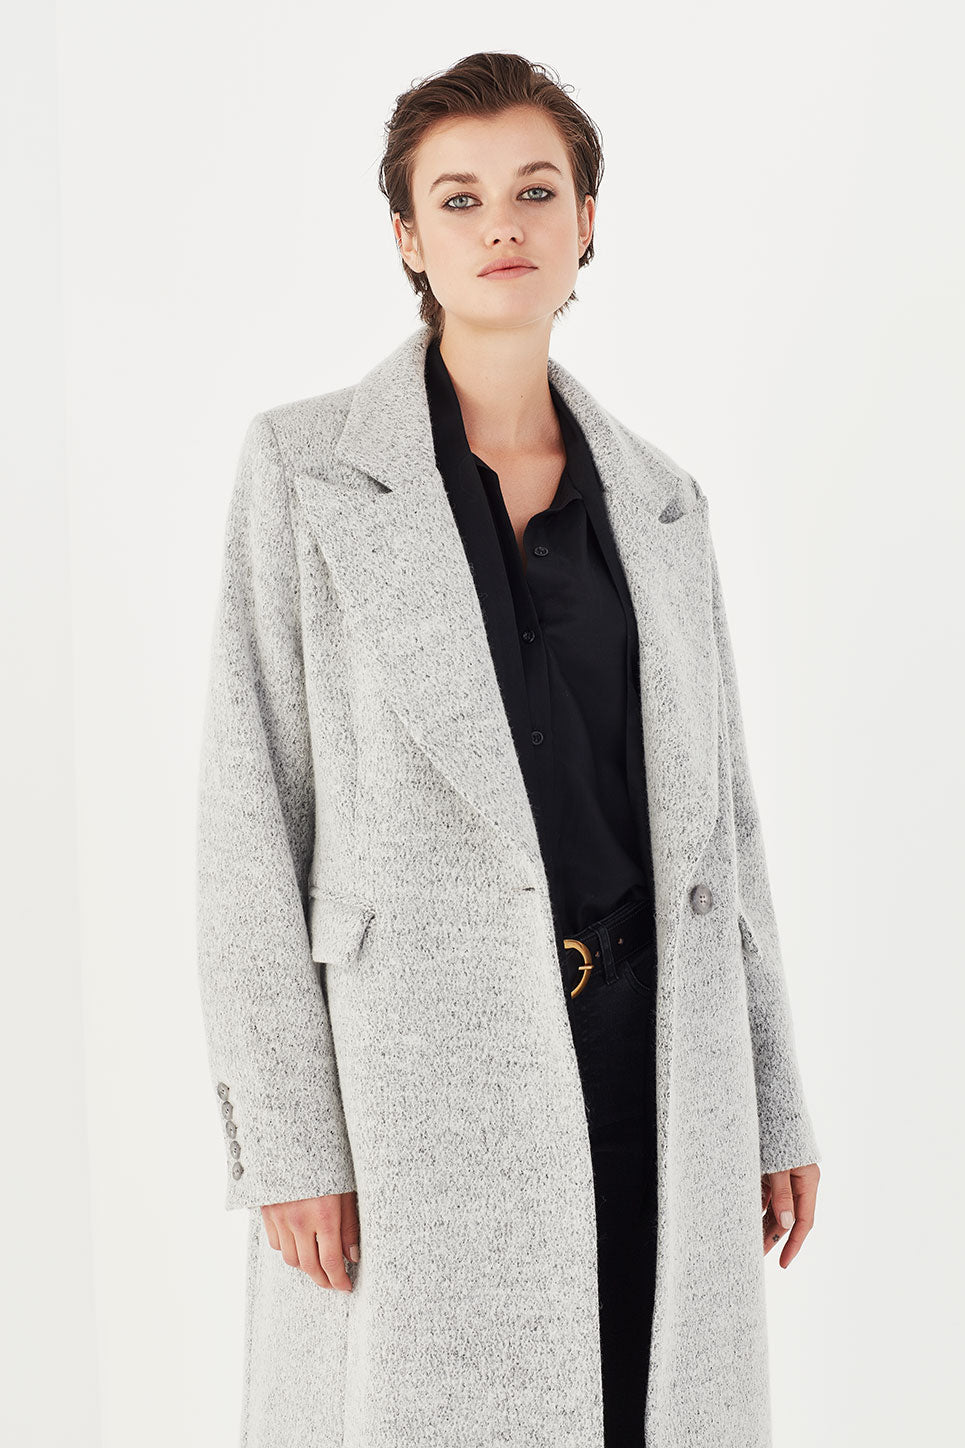 The Carter Coat in Silver Melange